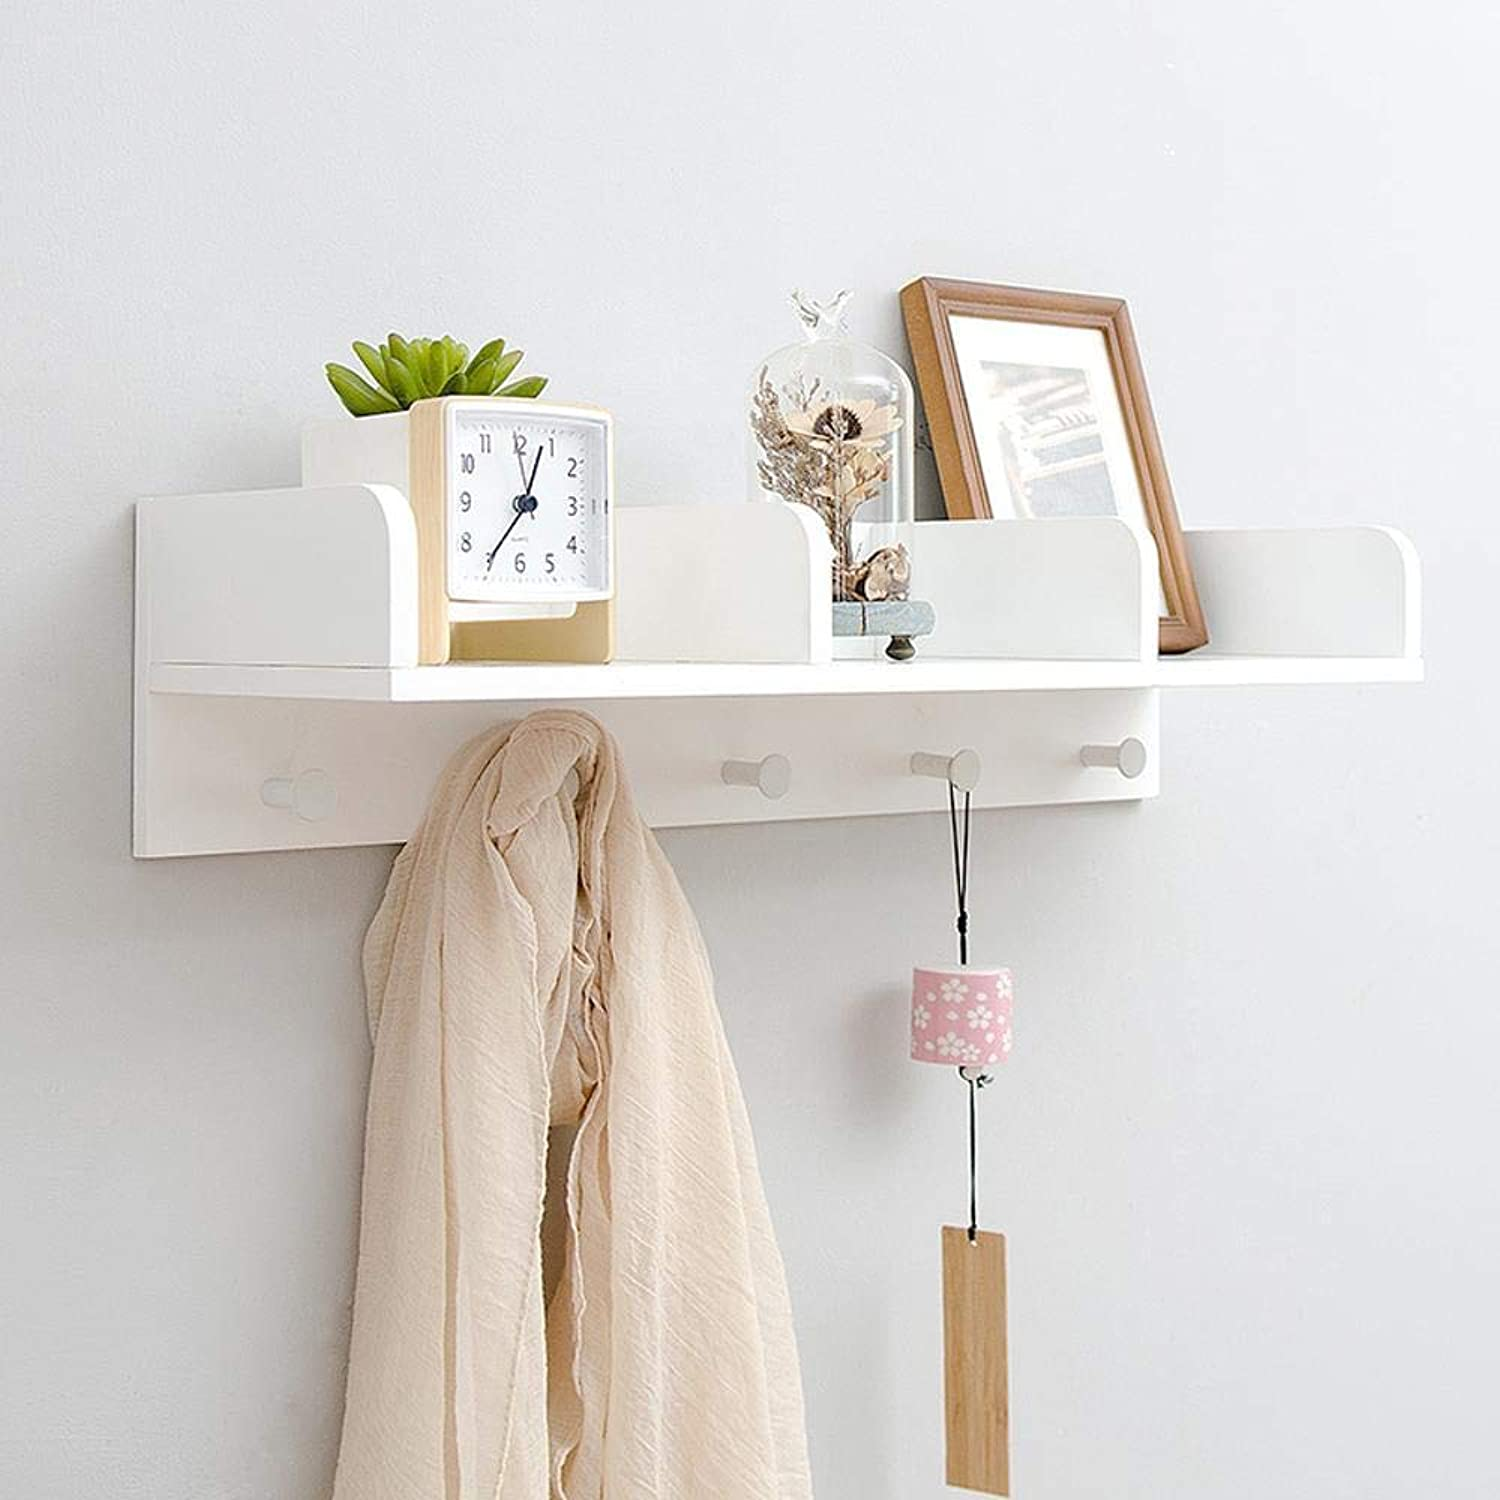 Yunfeng Shelf Creative Bamboo Wall Shelf Wall Storage partition Board Solid Wood Hook Wall Frame